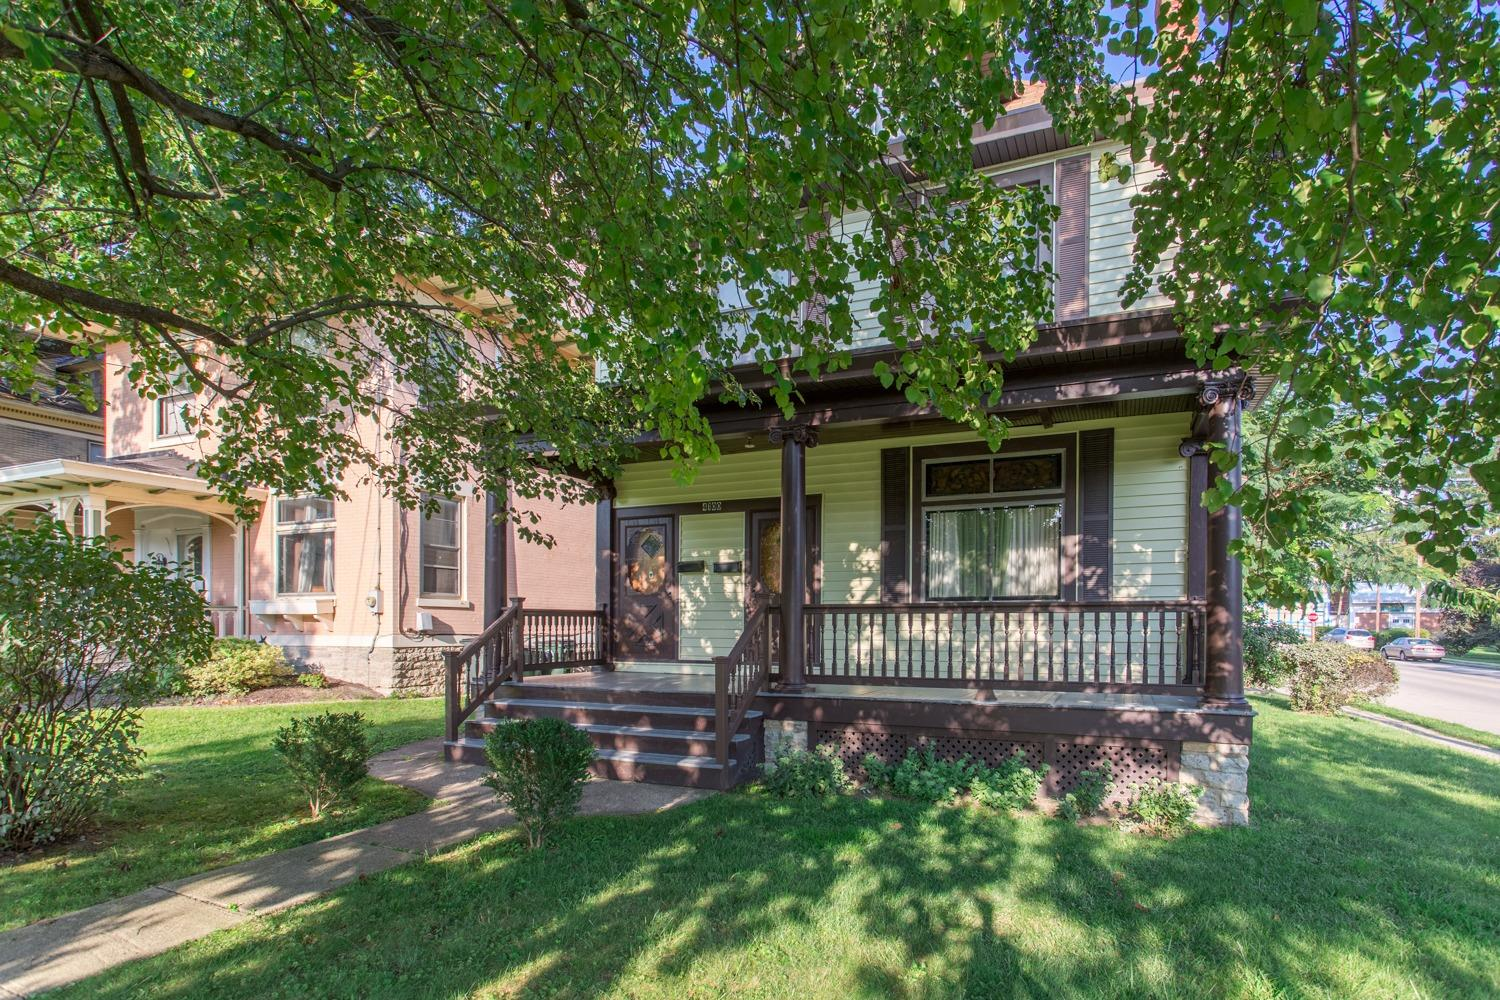 4100 Floral Ave Norwood Oh 45212 Mls 1594451 Coldwell Banker